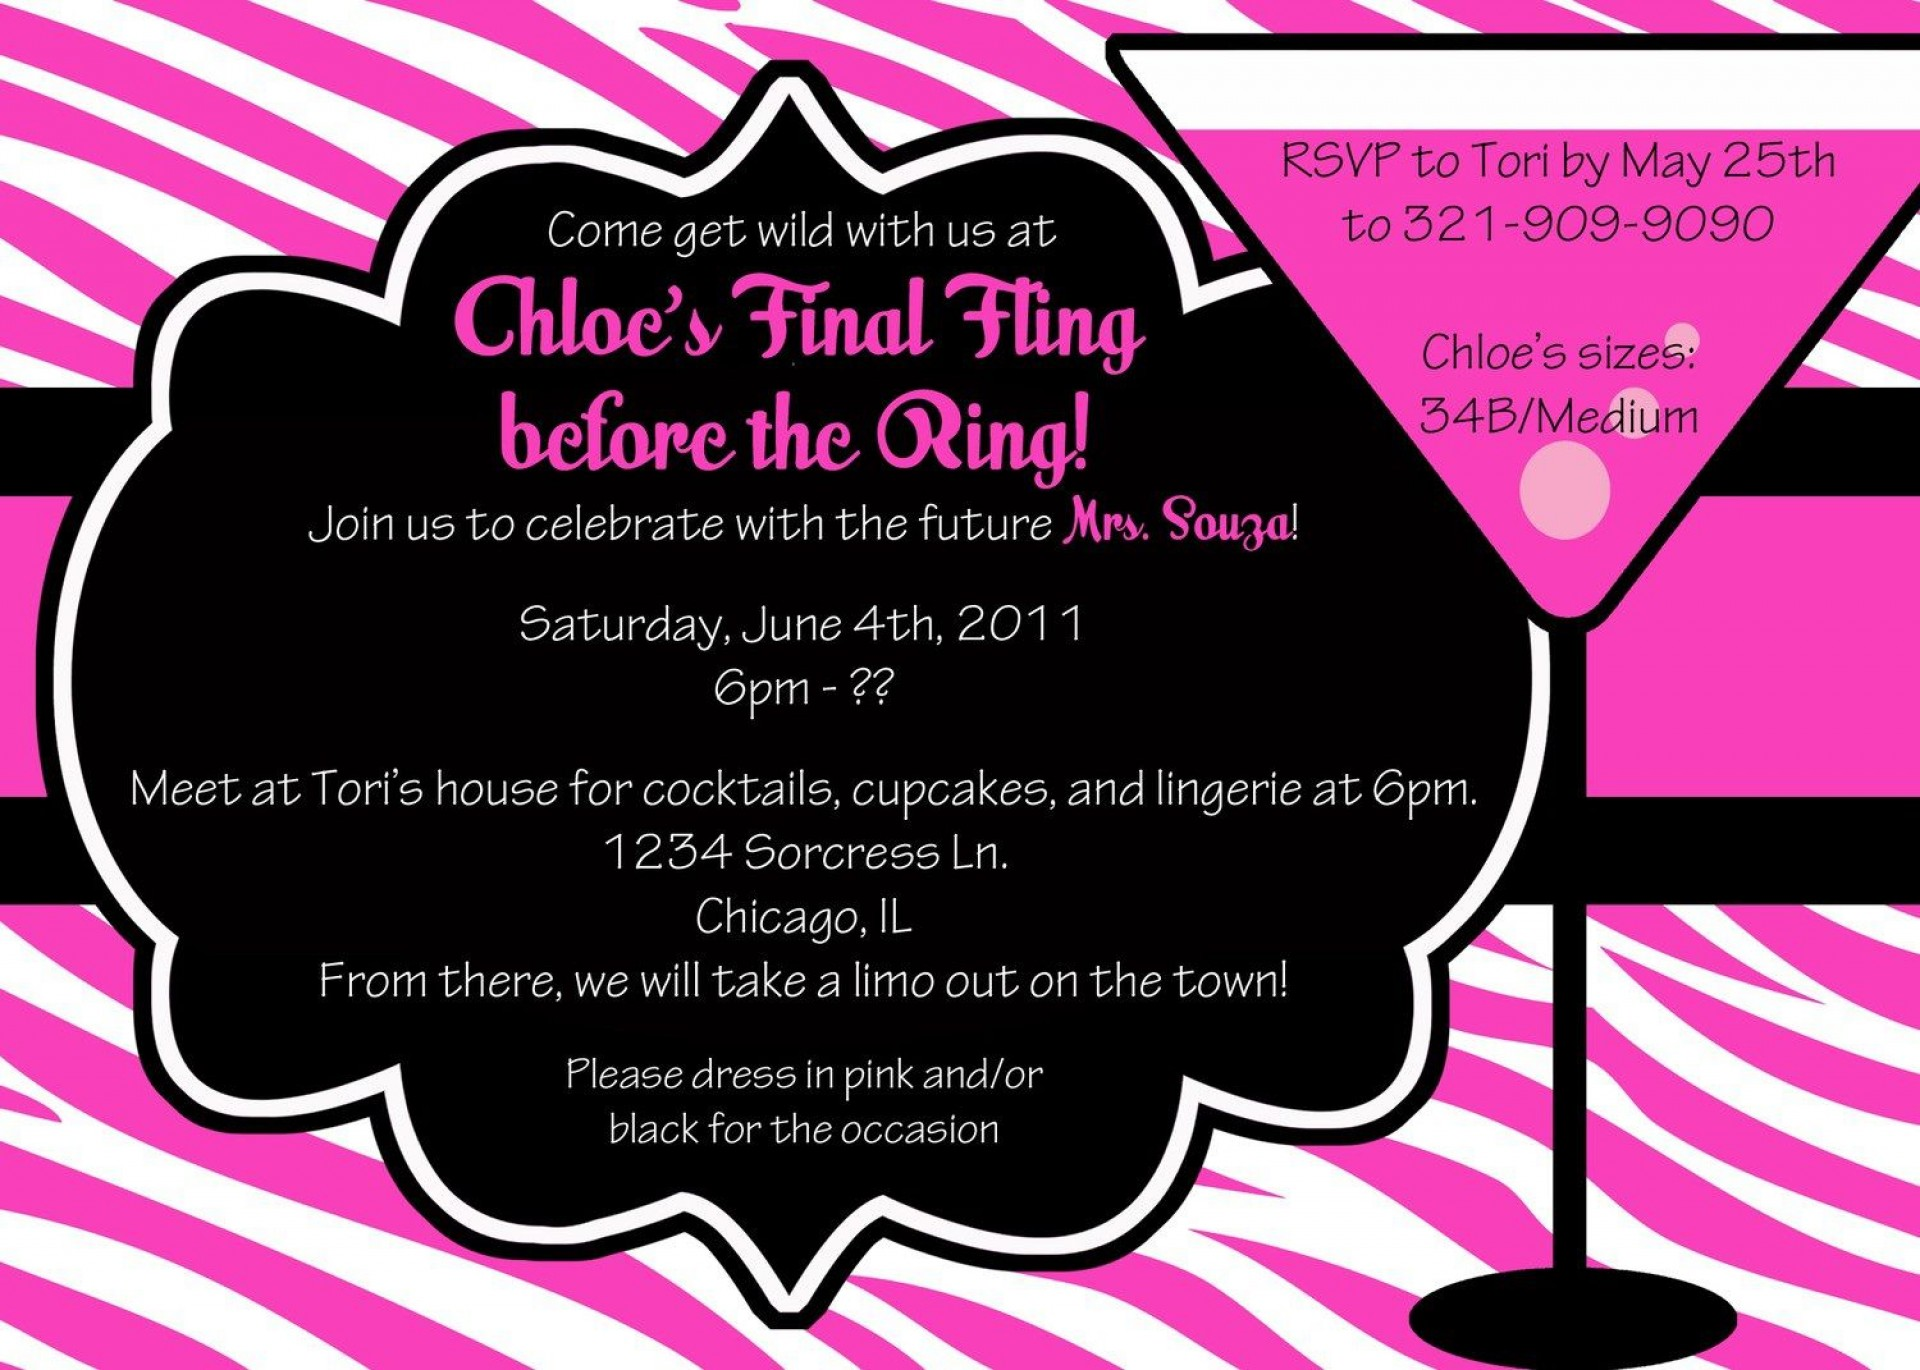 009 Remarkable Bachelorette Party Invitation Template Word Free High Definition 1920